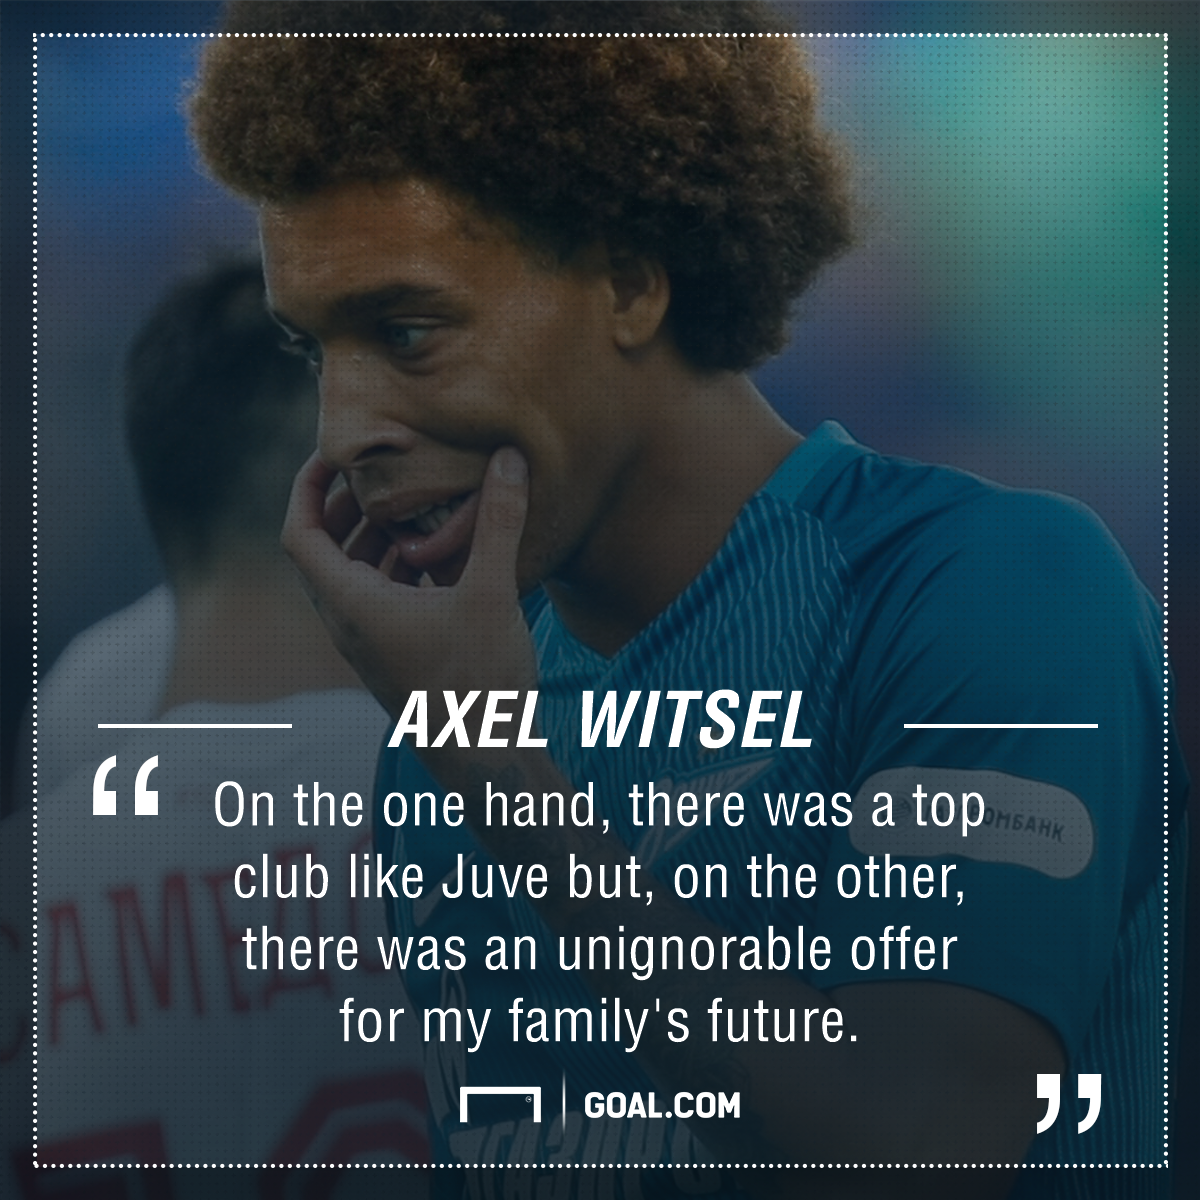 €98m for Oscar €72m for Witsel greedy footballers in their